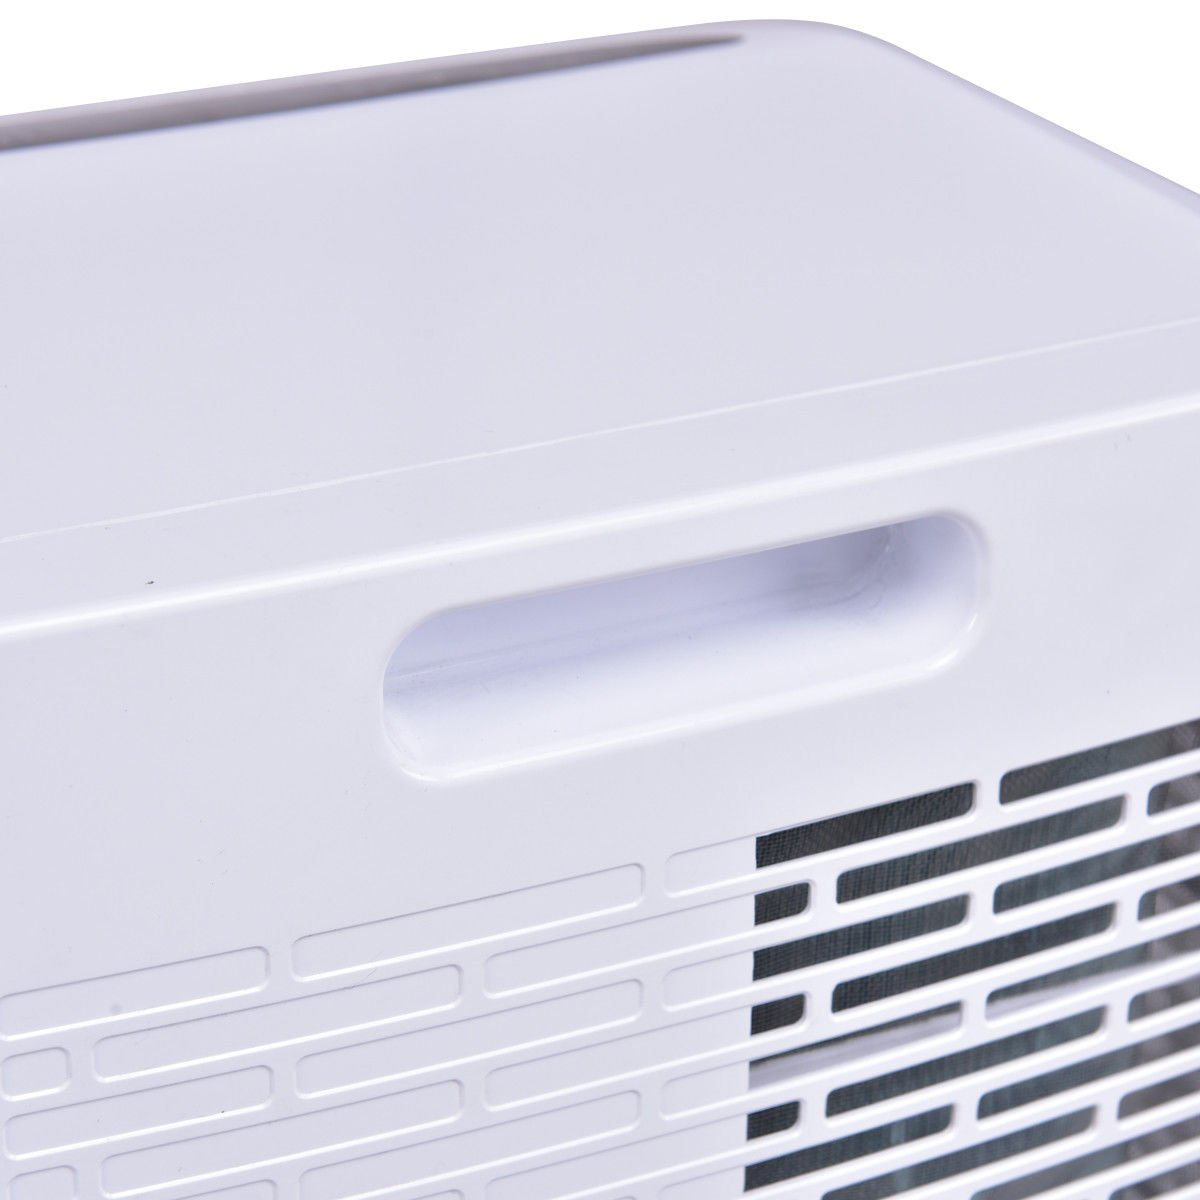 Costway 10,000 BTU Portable Air Conditioner with Remote Control Dehumidifier Function Window Wall Mount in White by COSTWAY (Image #9)